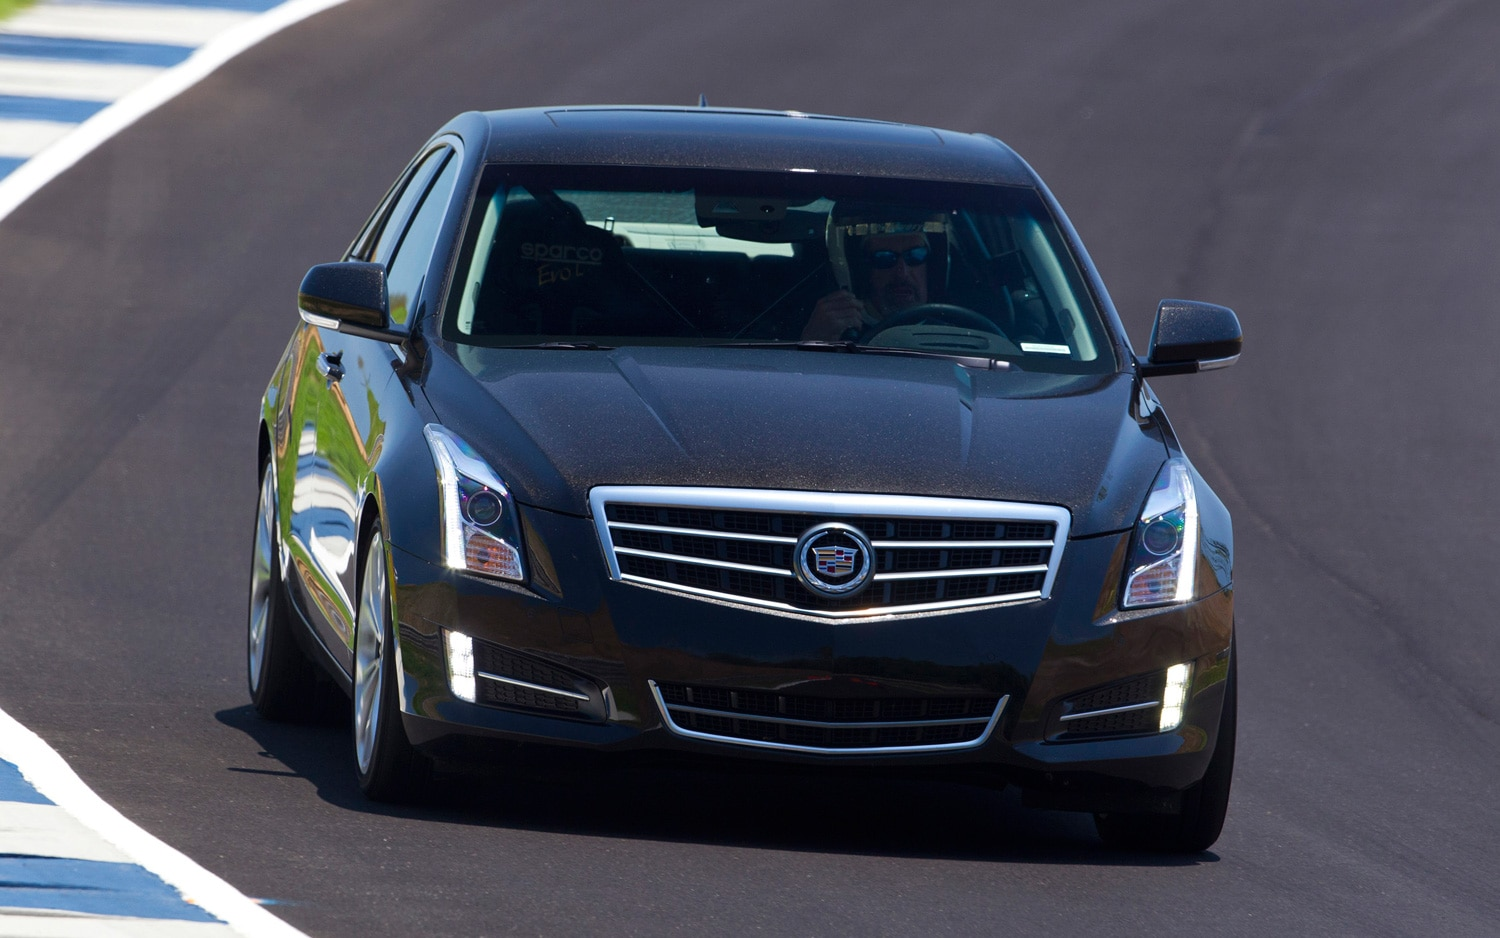 2013 cadillac ats base four cylinder rated at 22 33 mpg. Black Bedroom Furniture Sets. Home Design Ideas